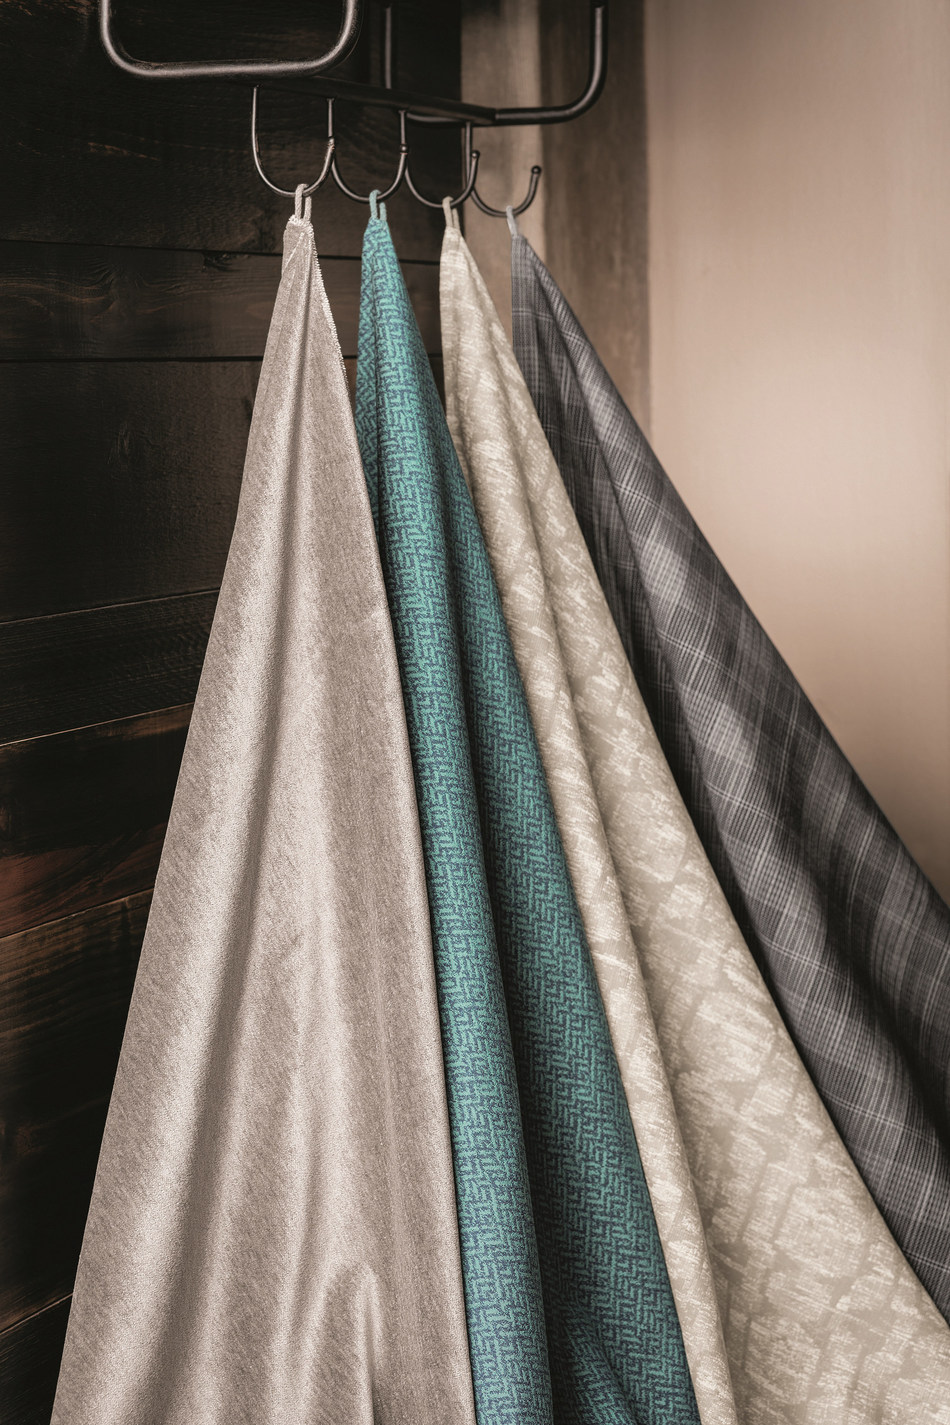 Suit Yourself. A stylish collection of upholstery and drapery fabrics that are a cut above.